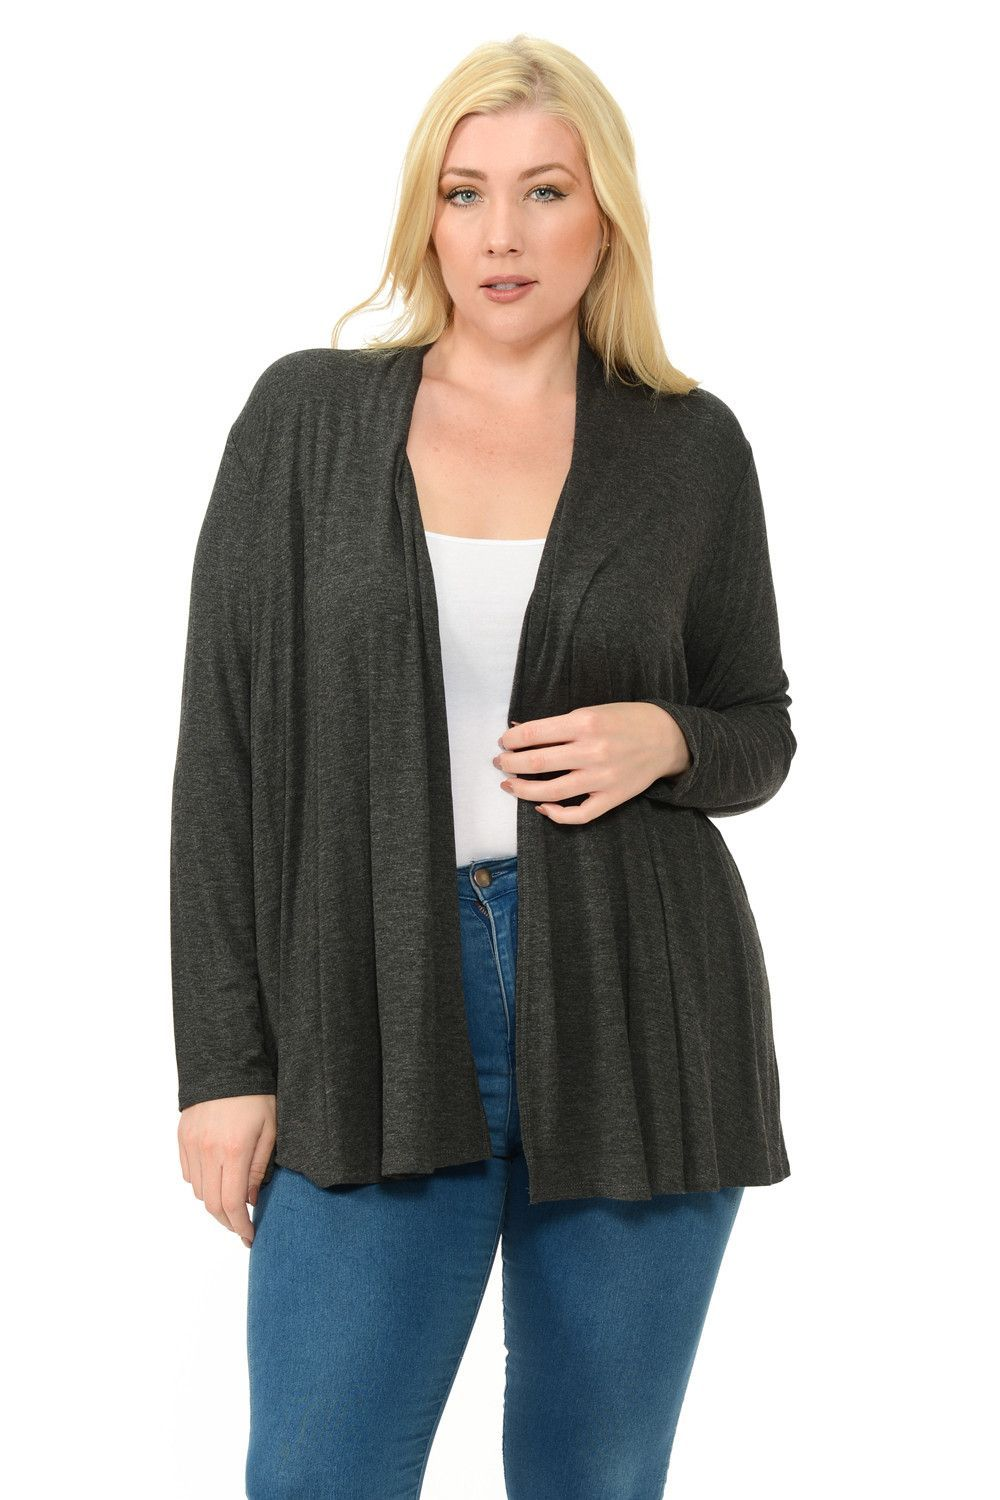 971cd7623e82 Wrap up with this cardigan for style with any outfit. Pair it with any top  along with some skinny jeans for a complete casual look.